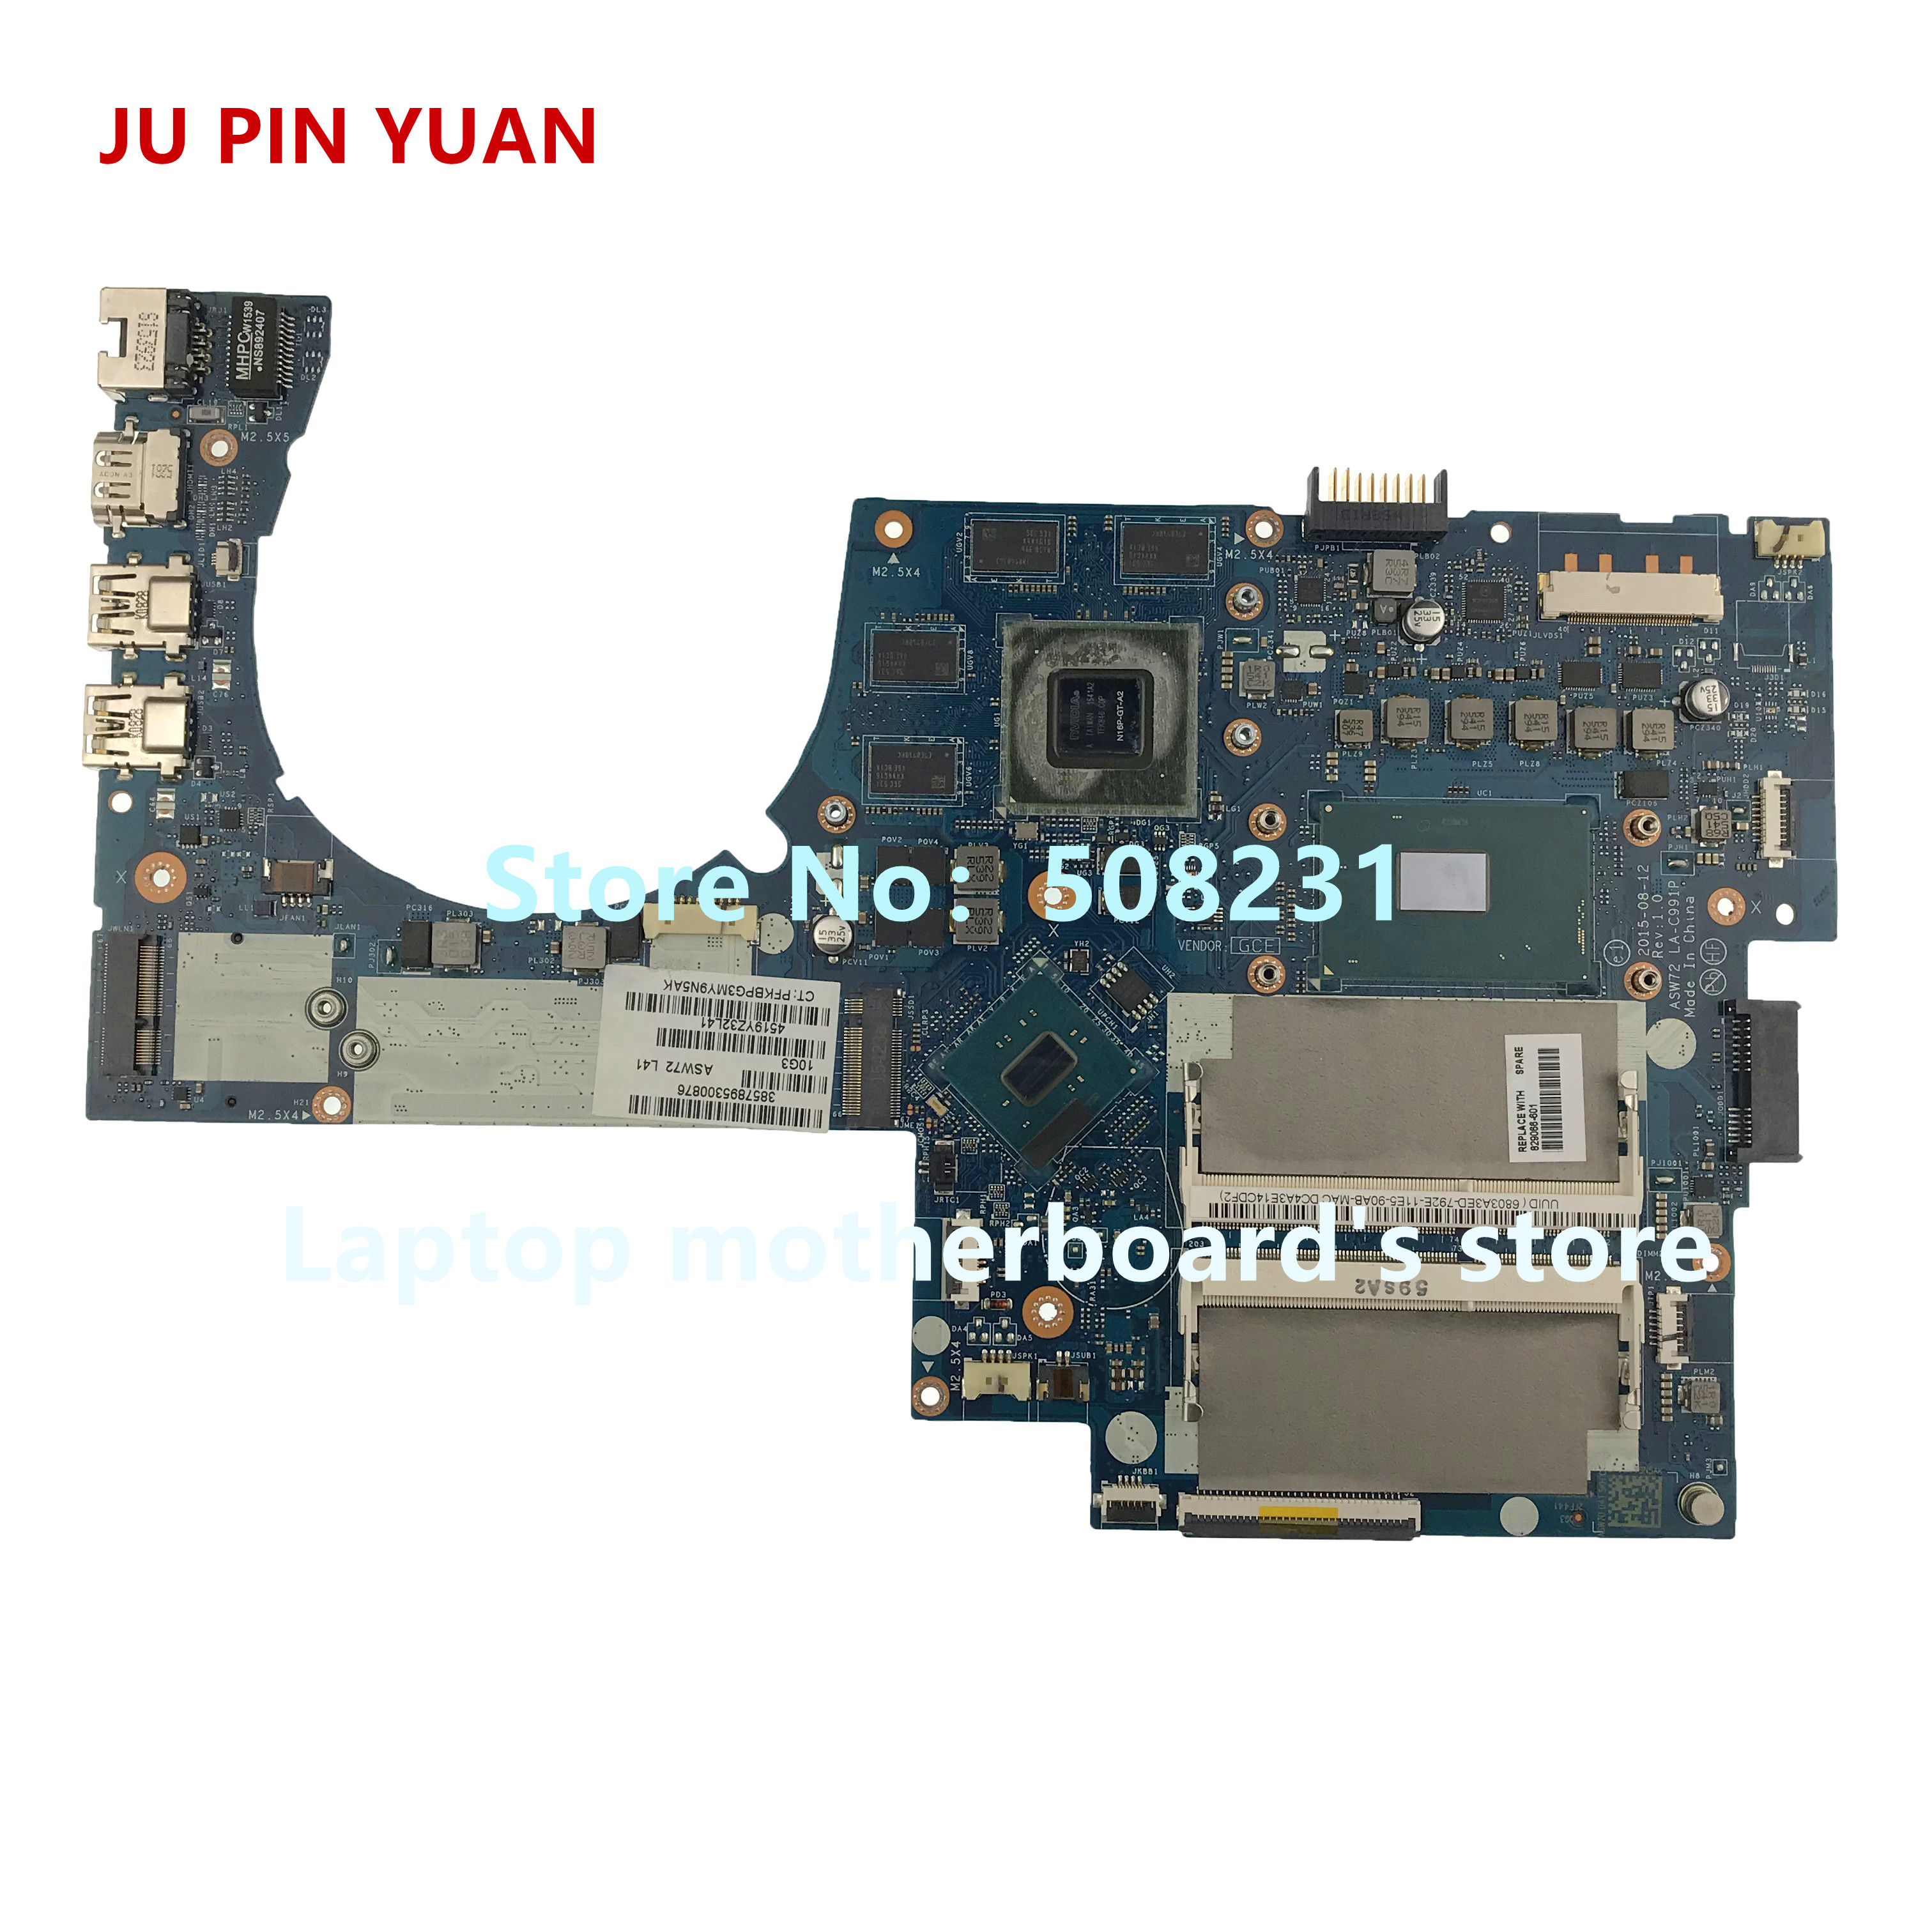 JU PIN YUAN 829066-001 829066-601 LA-C991P  For HP ENVY NOTEBOOK 17T-N Laptop Motherboard With 950M 4GB I7-6700HQ Fully Tested